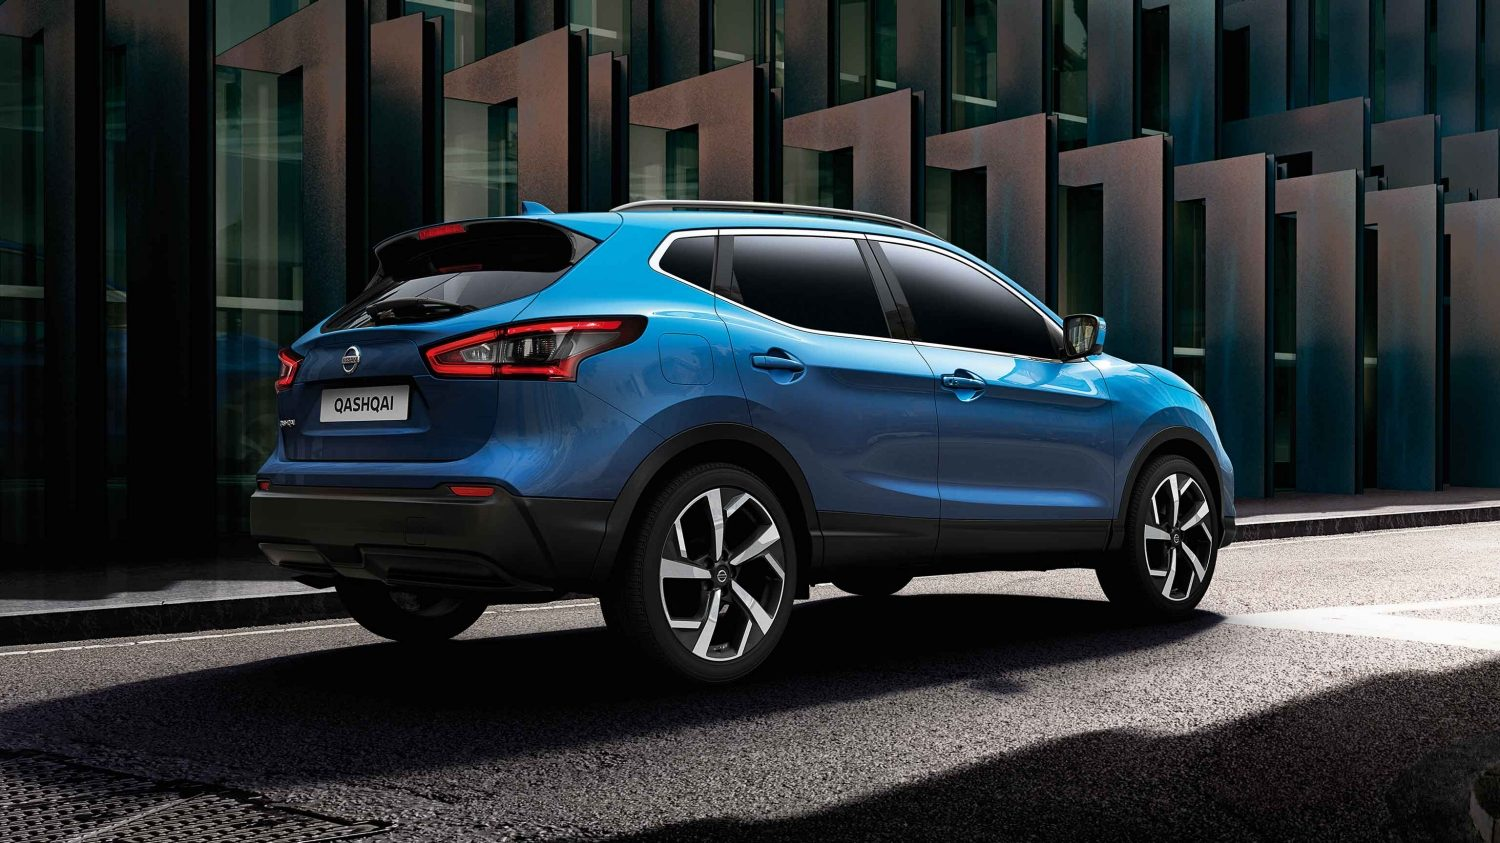 New Qashqai | Nissan South Africa